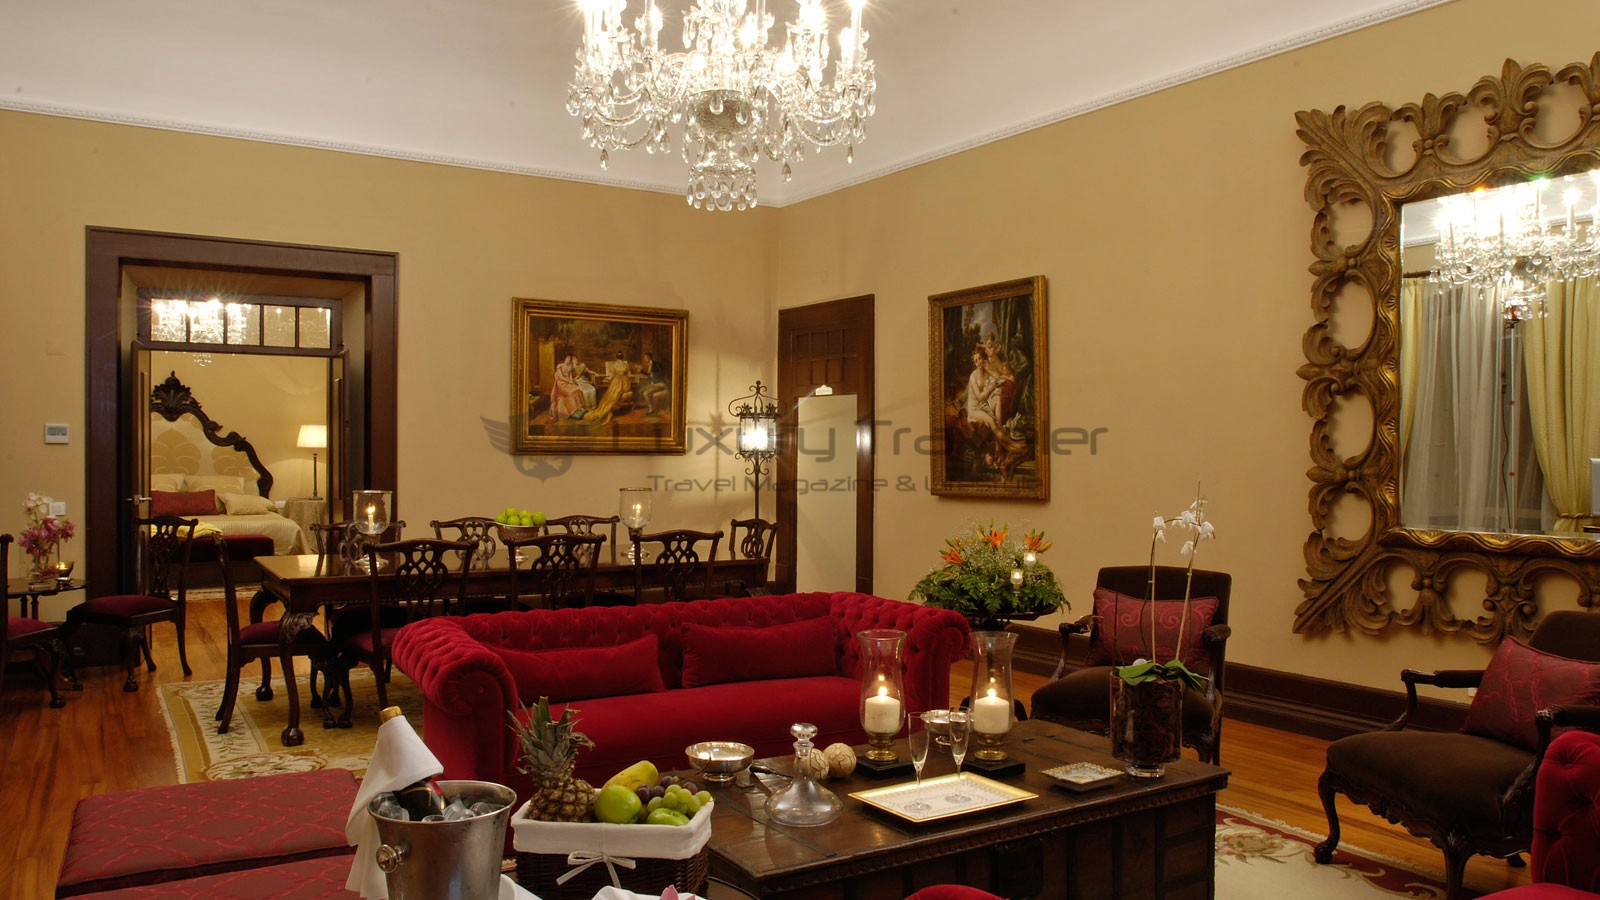 Convento_Espinheiro_Hotel_Evora_Starwood_Royal_Suite_Luxury